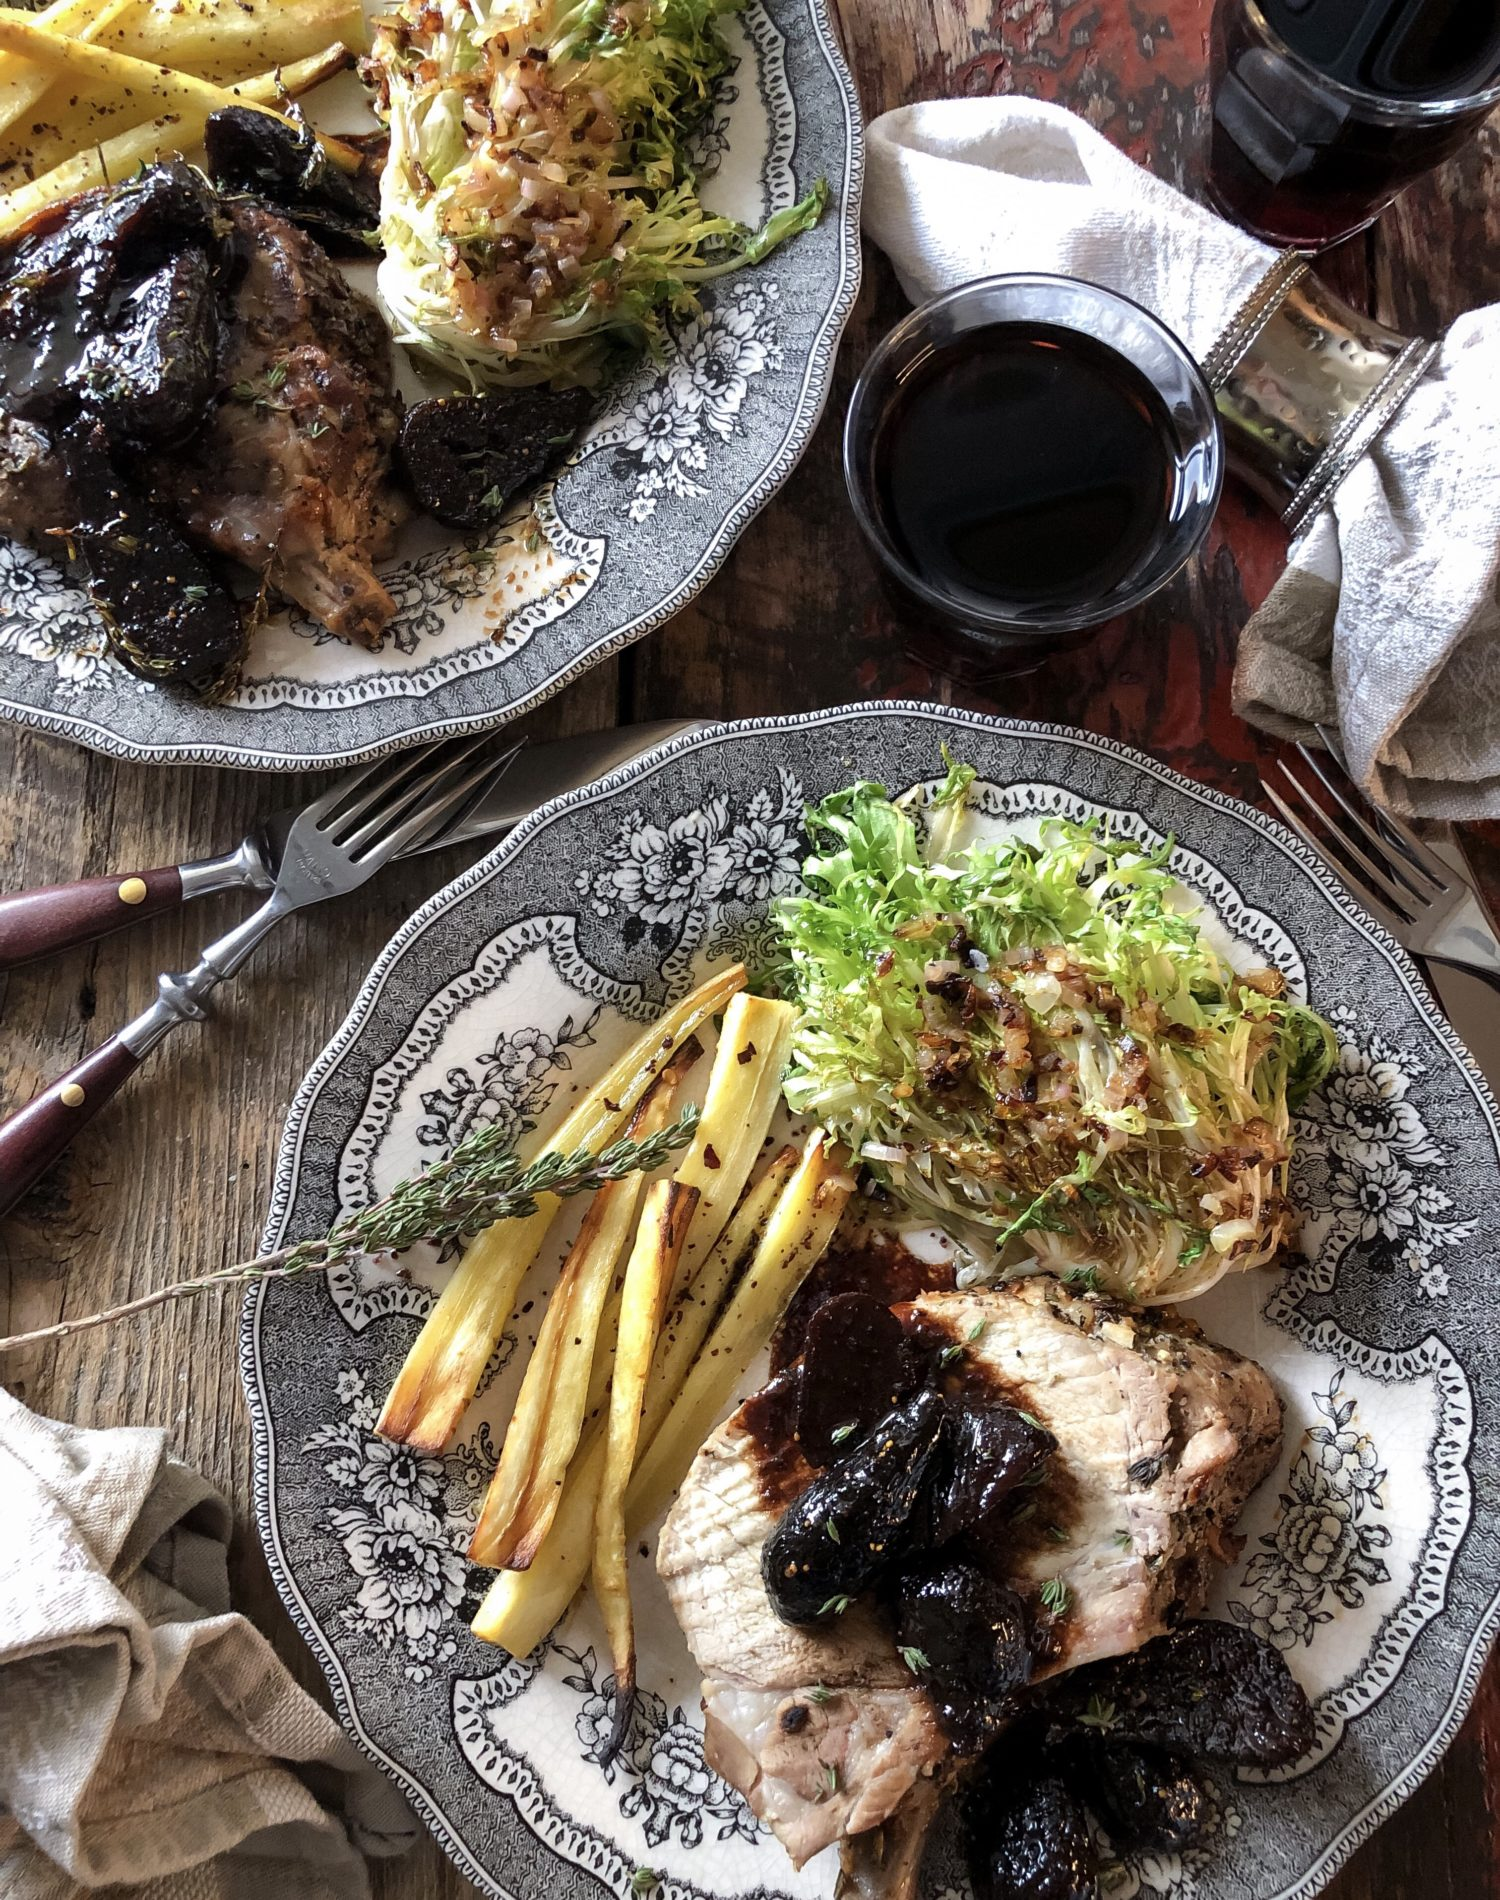 Pork Loin Roast with Figs in Vermouth Sauce